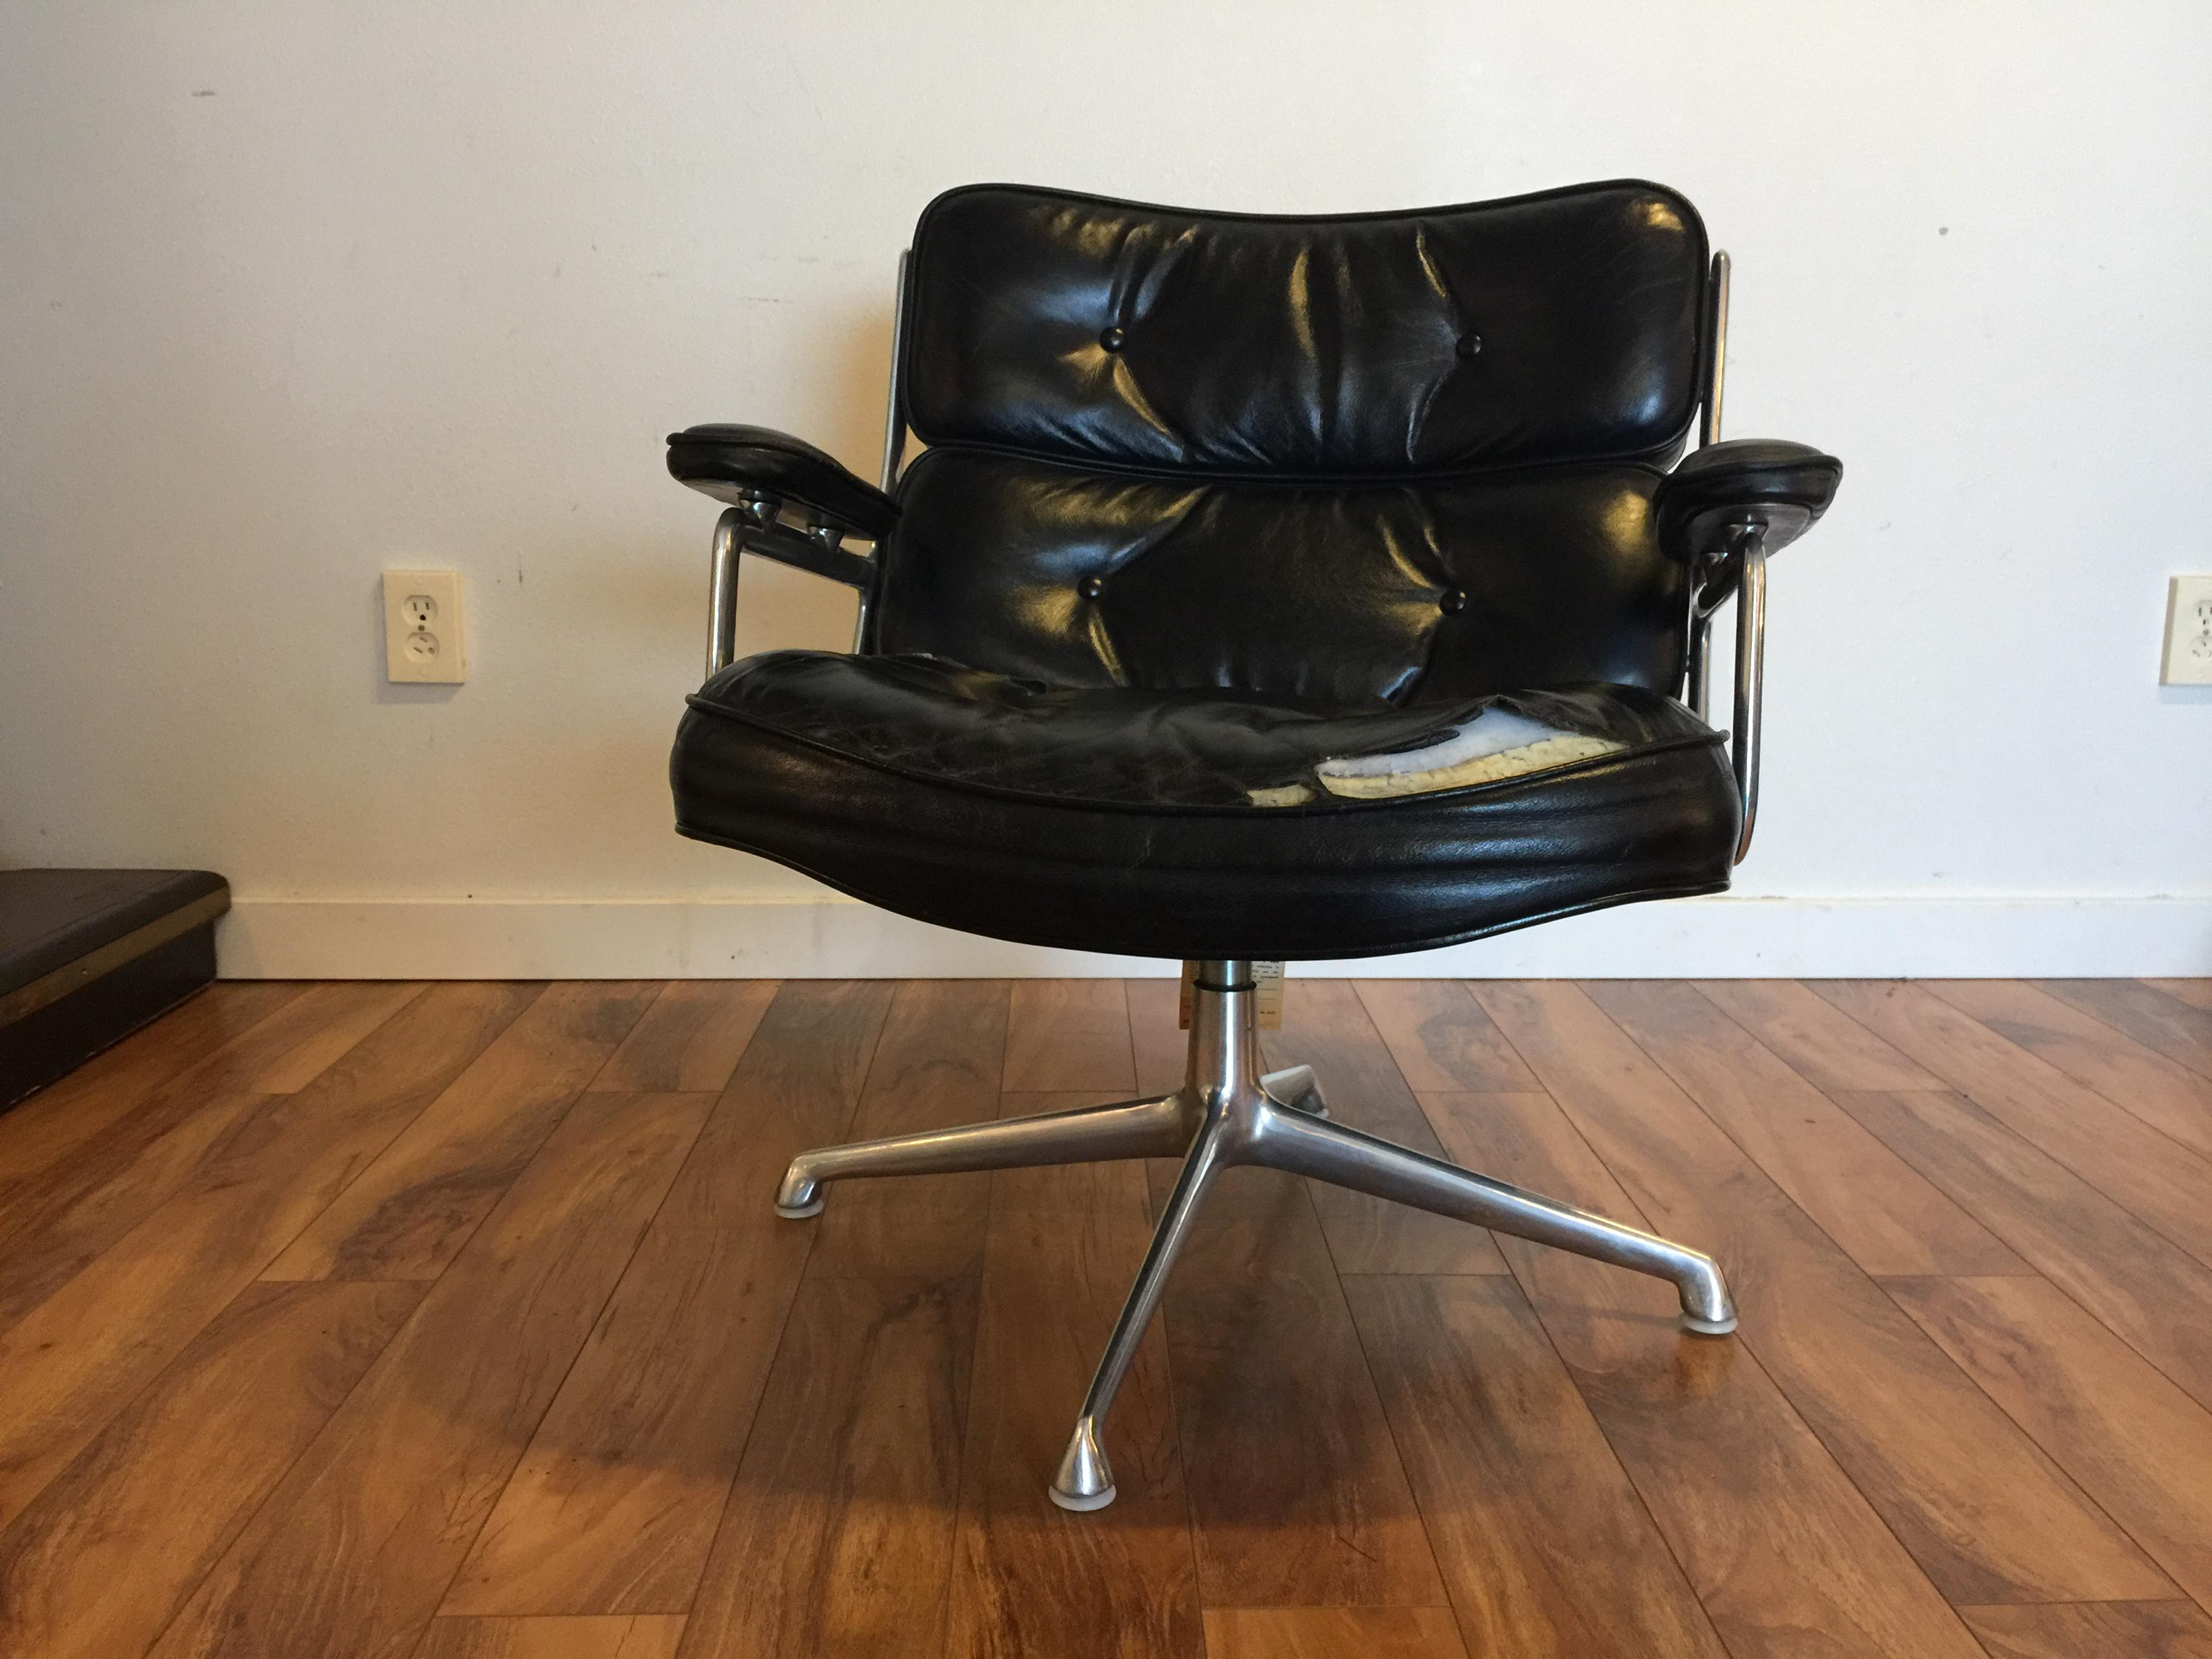 herman miller chairs seattle lounge lizard quick dry chair cover vintage eames for time life leather executive sale in image